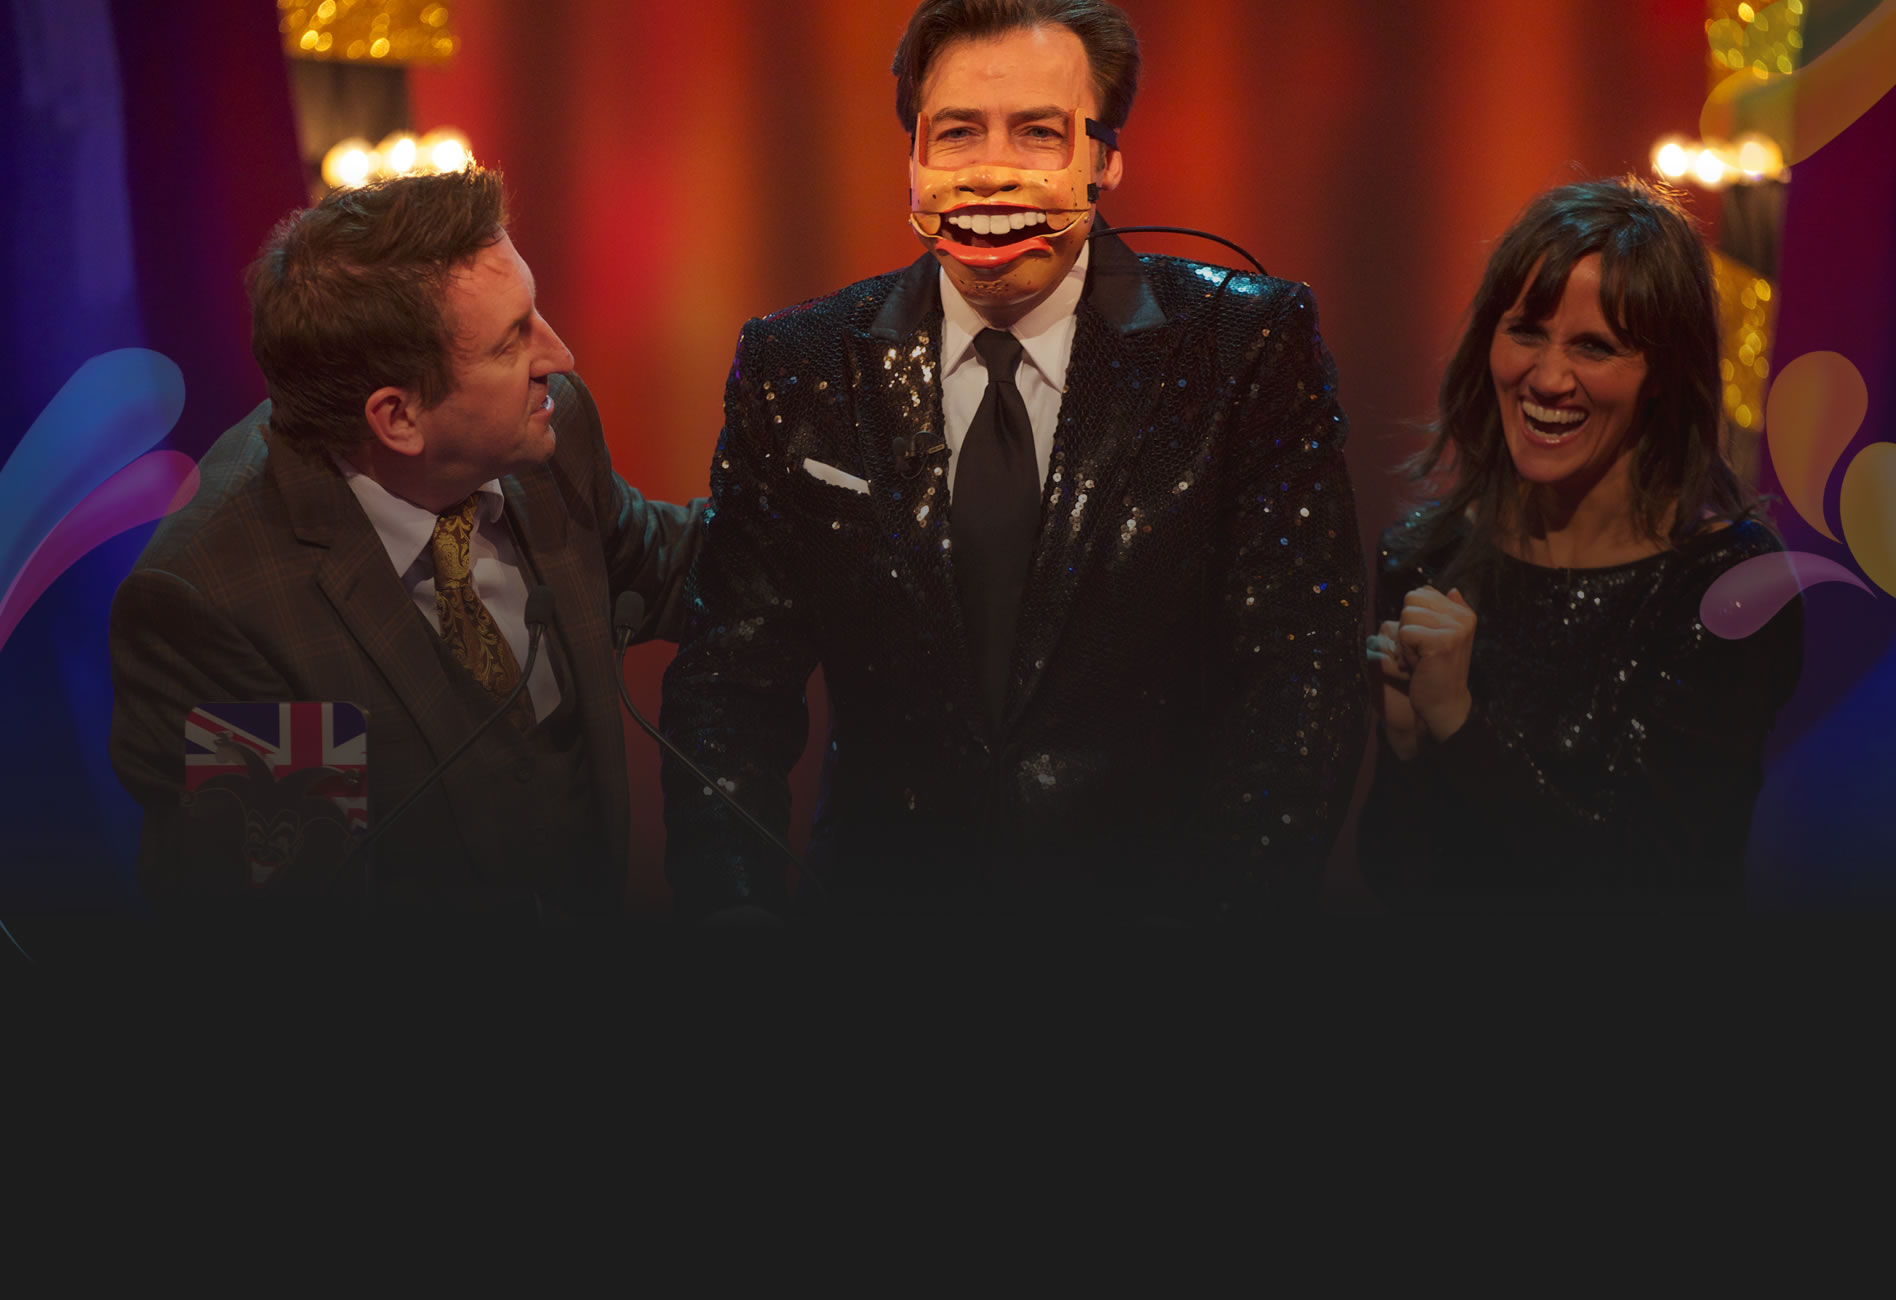 The British Comedy Awards 2014